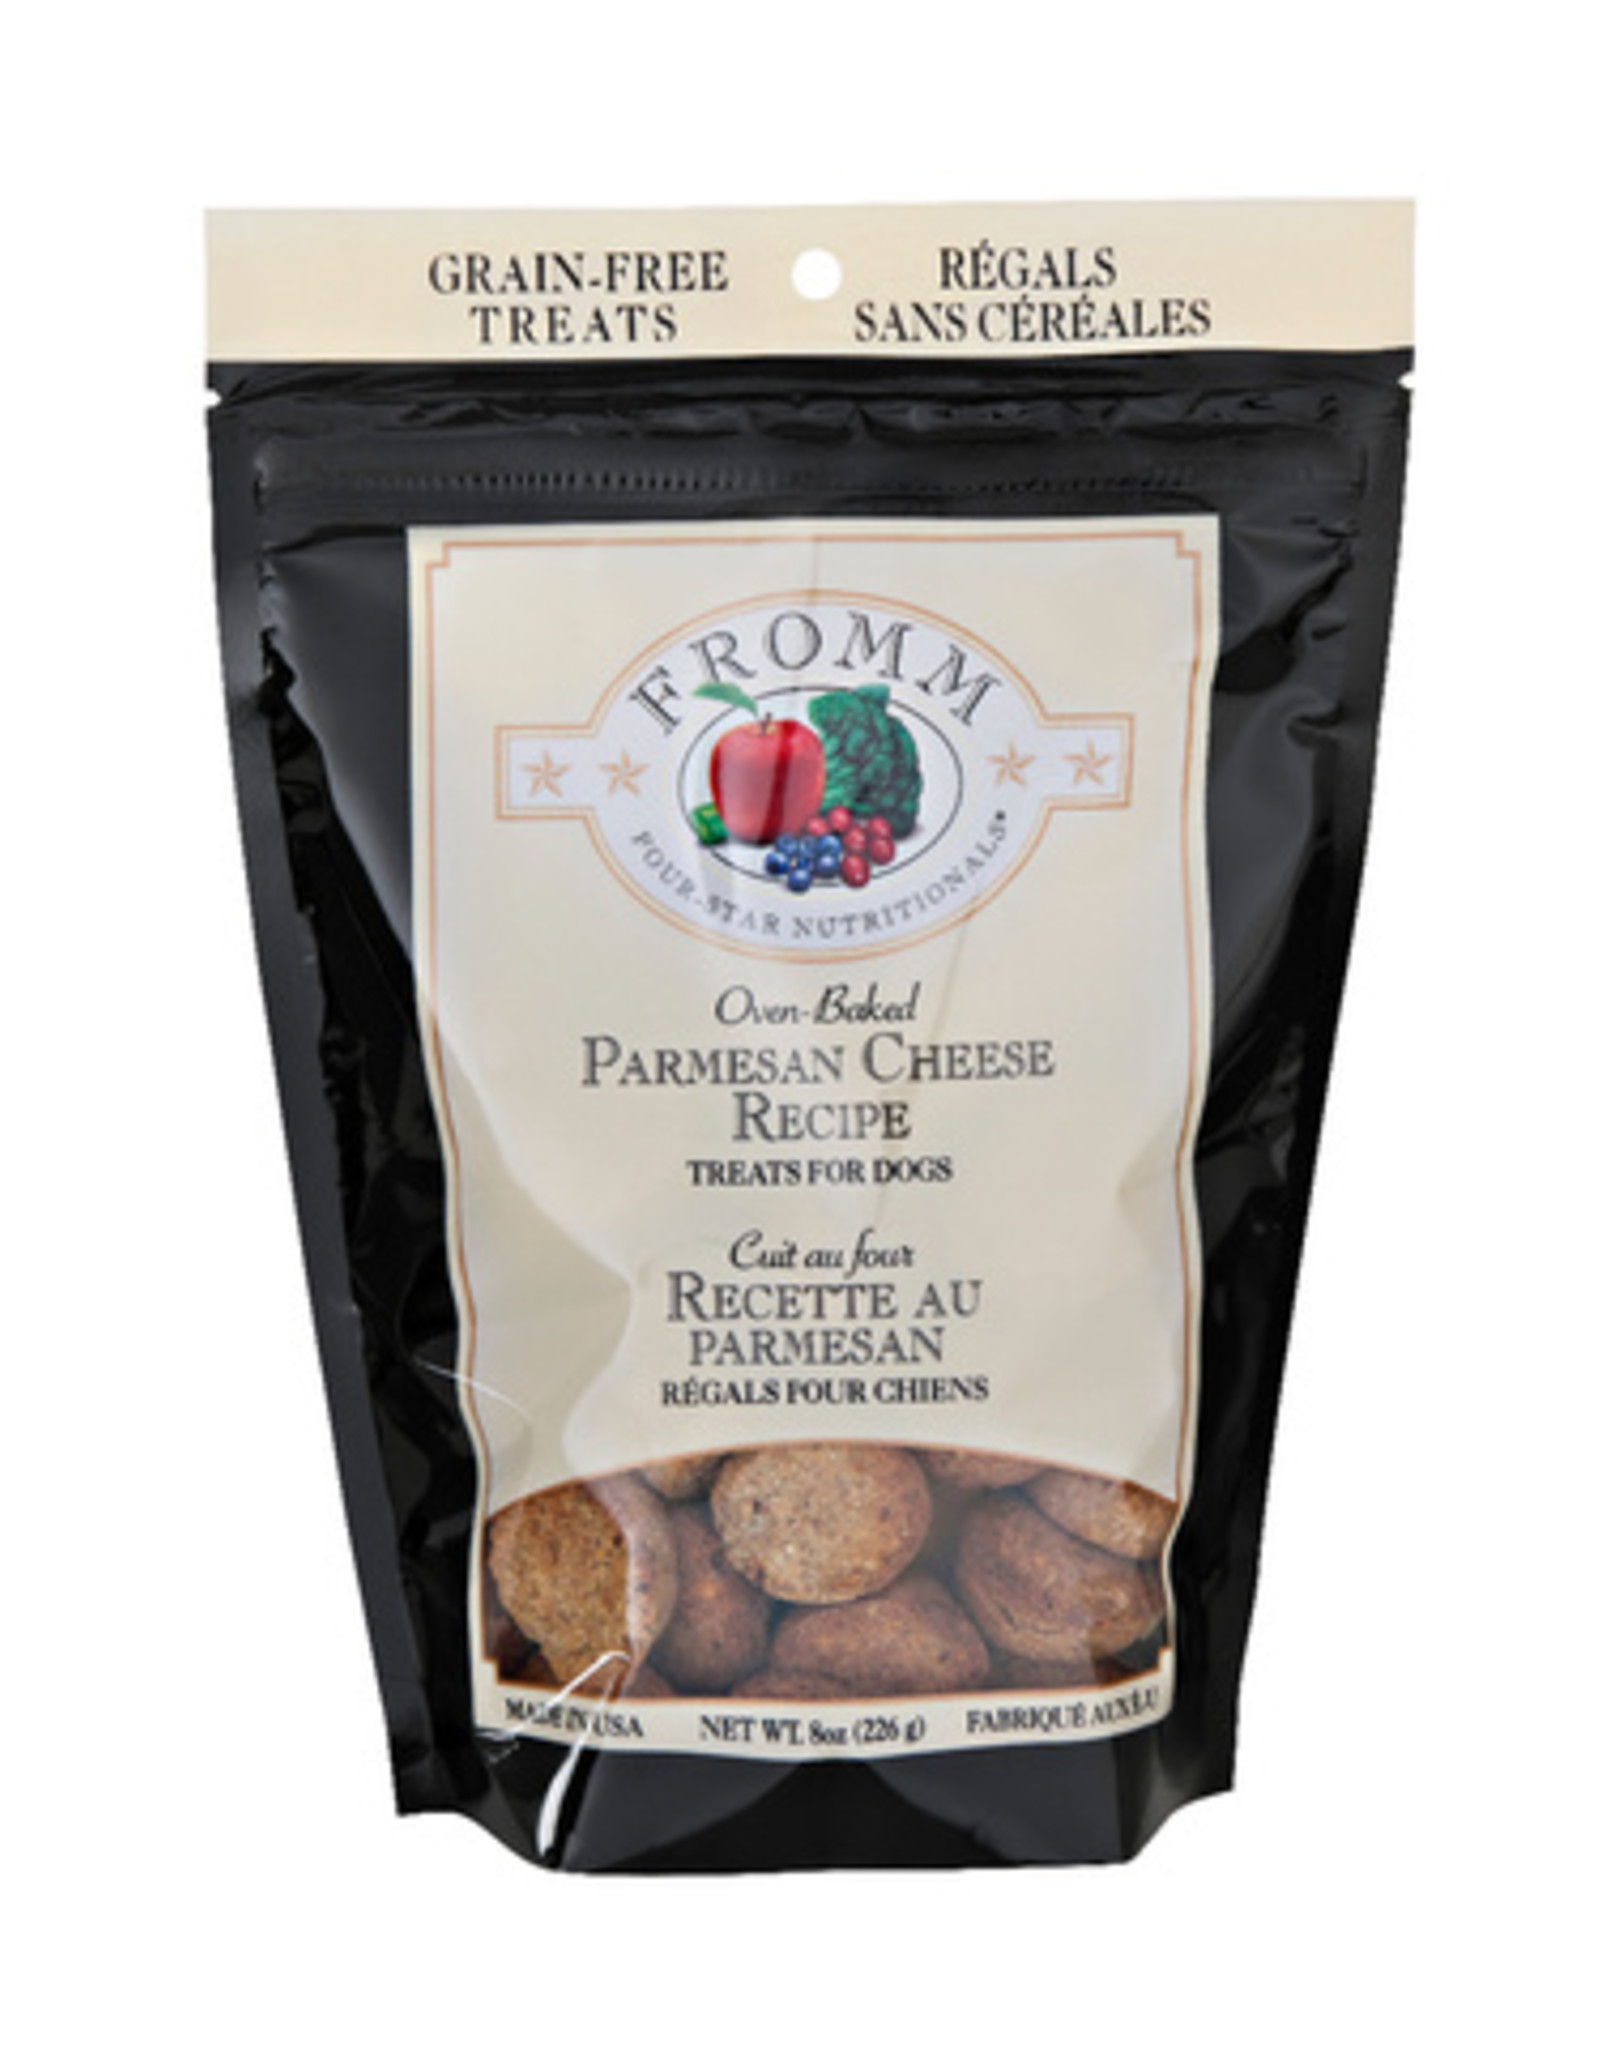 FROMM FAMILY FOODS LLC FROMM PARMESAN CHEESE TREATS, 8 OZ. POUCH GRAIN-FREE